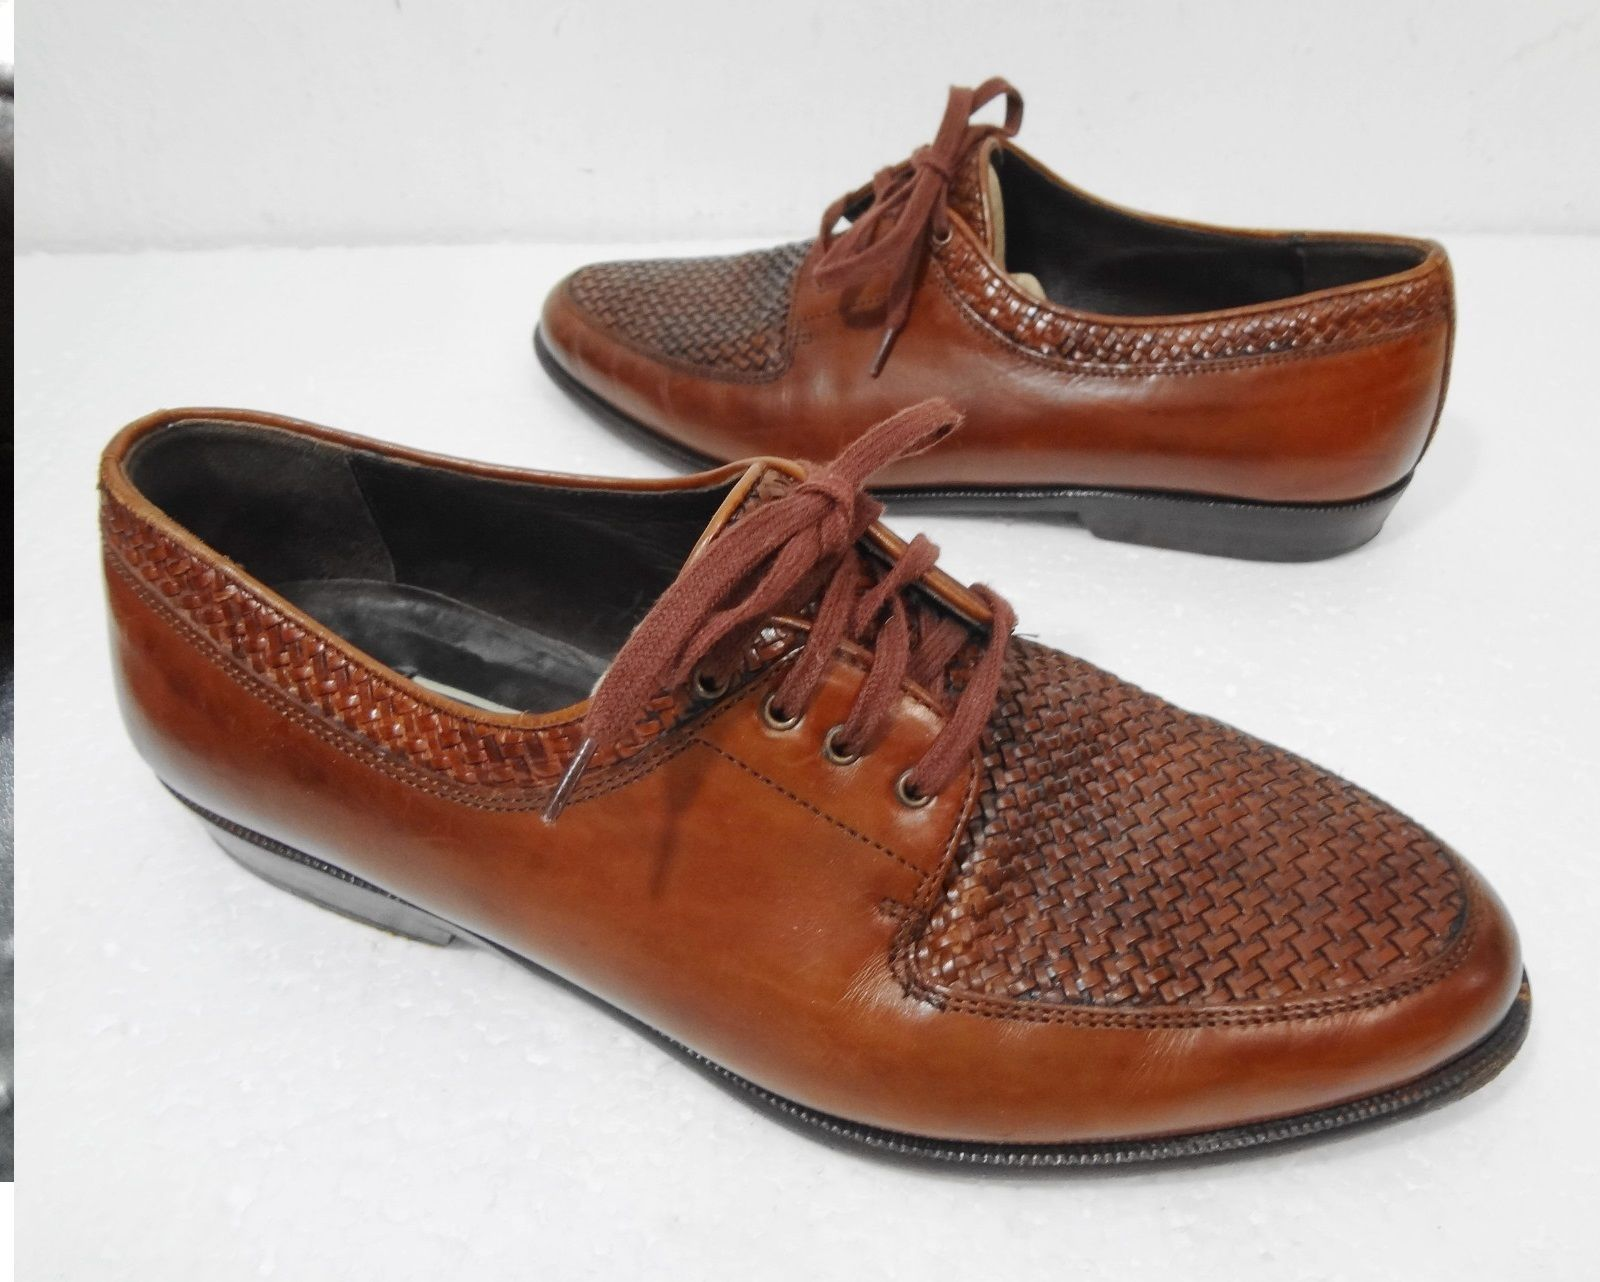 994a6f15ac9 S l1600. S l1600. Previous. Bragano Cole Haan Mens 7 M Carmel Brown Woven  Leather Oxford Shoes Made ...